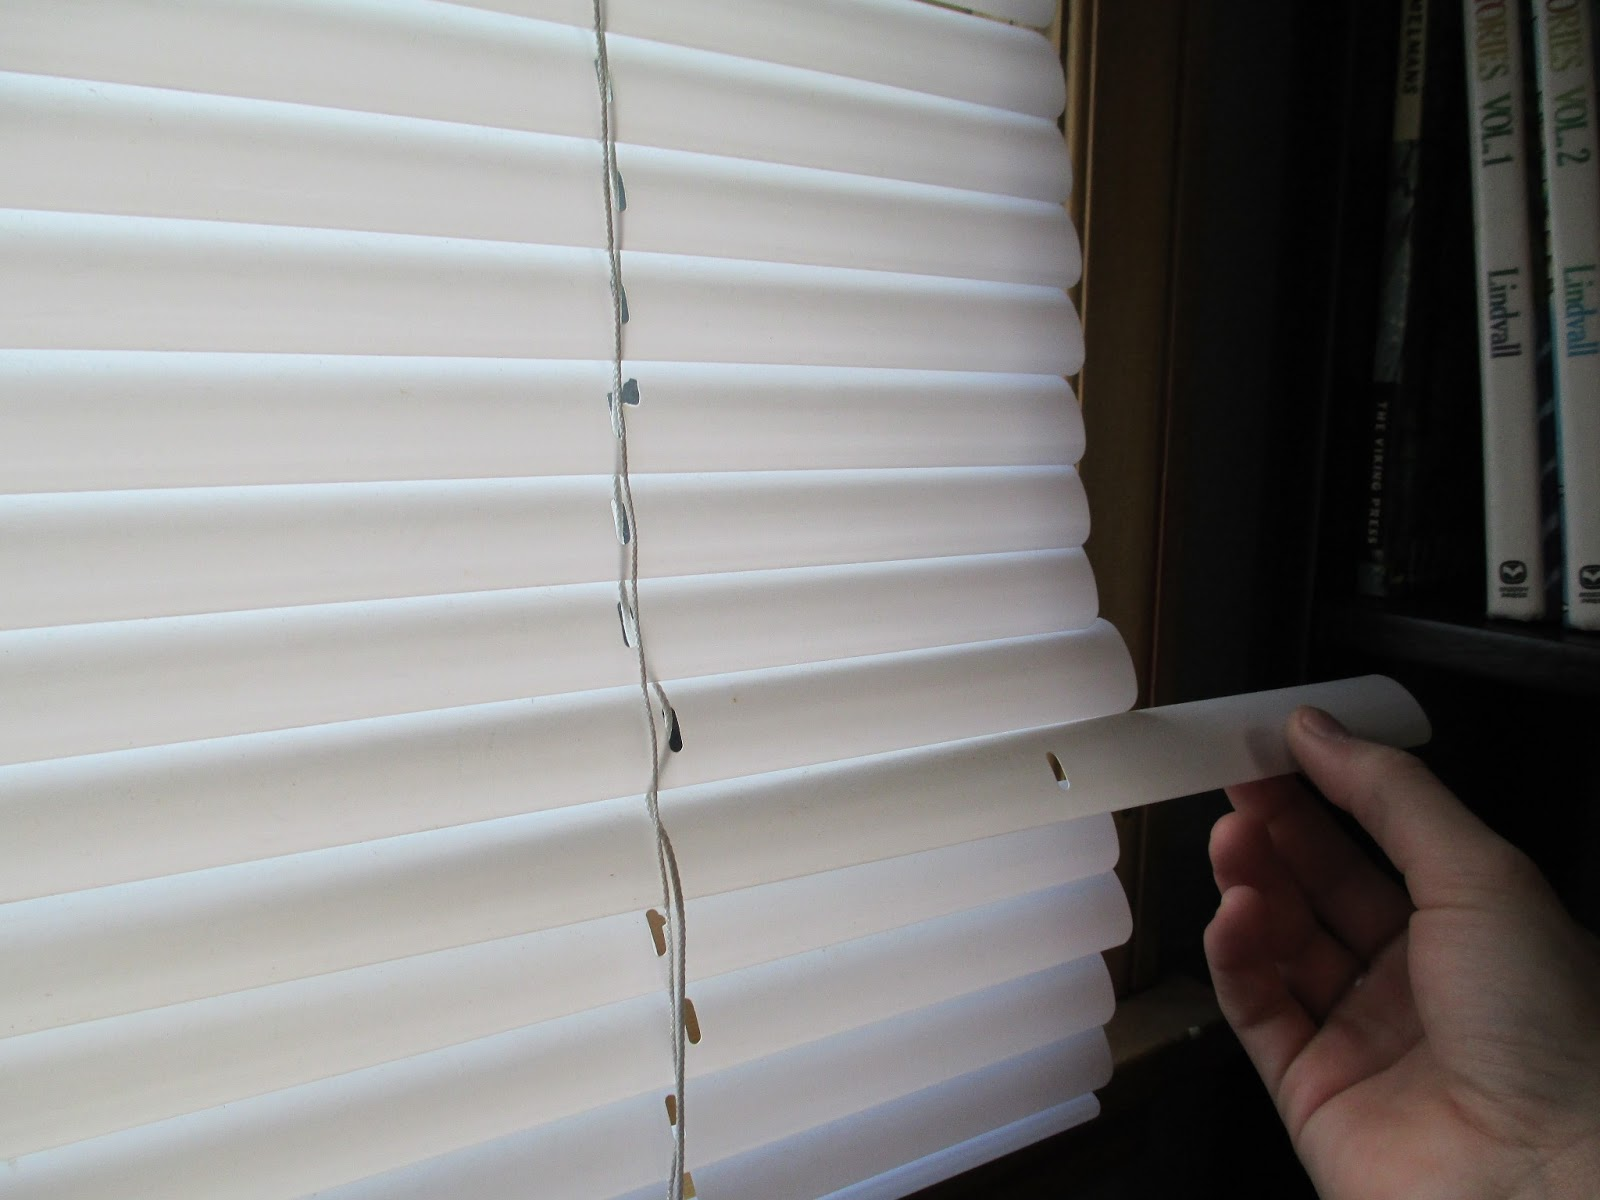 Oaken Gearbox Fix Those Annoying Too Long Mini Blinds